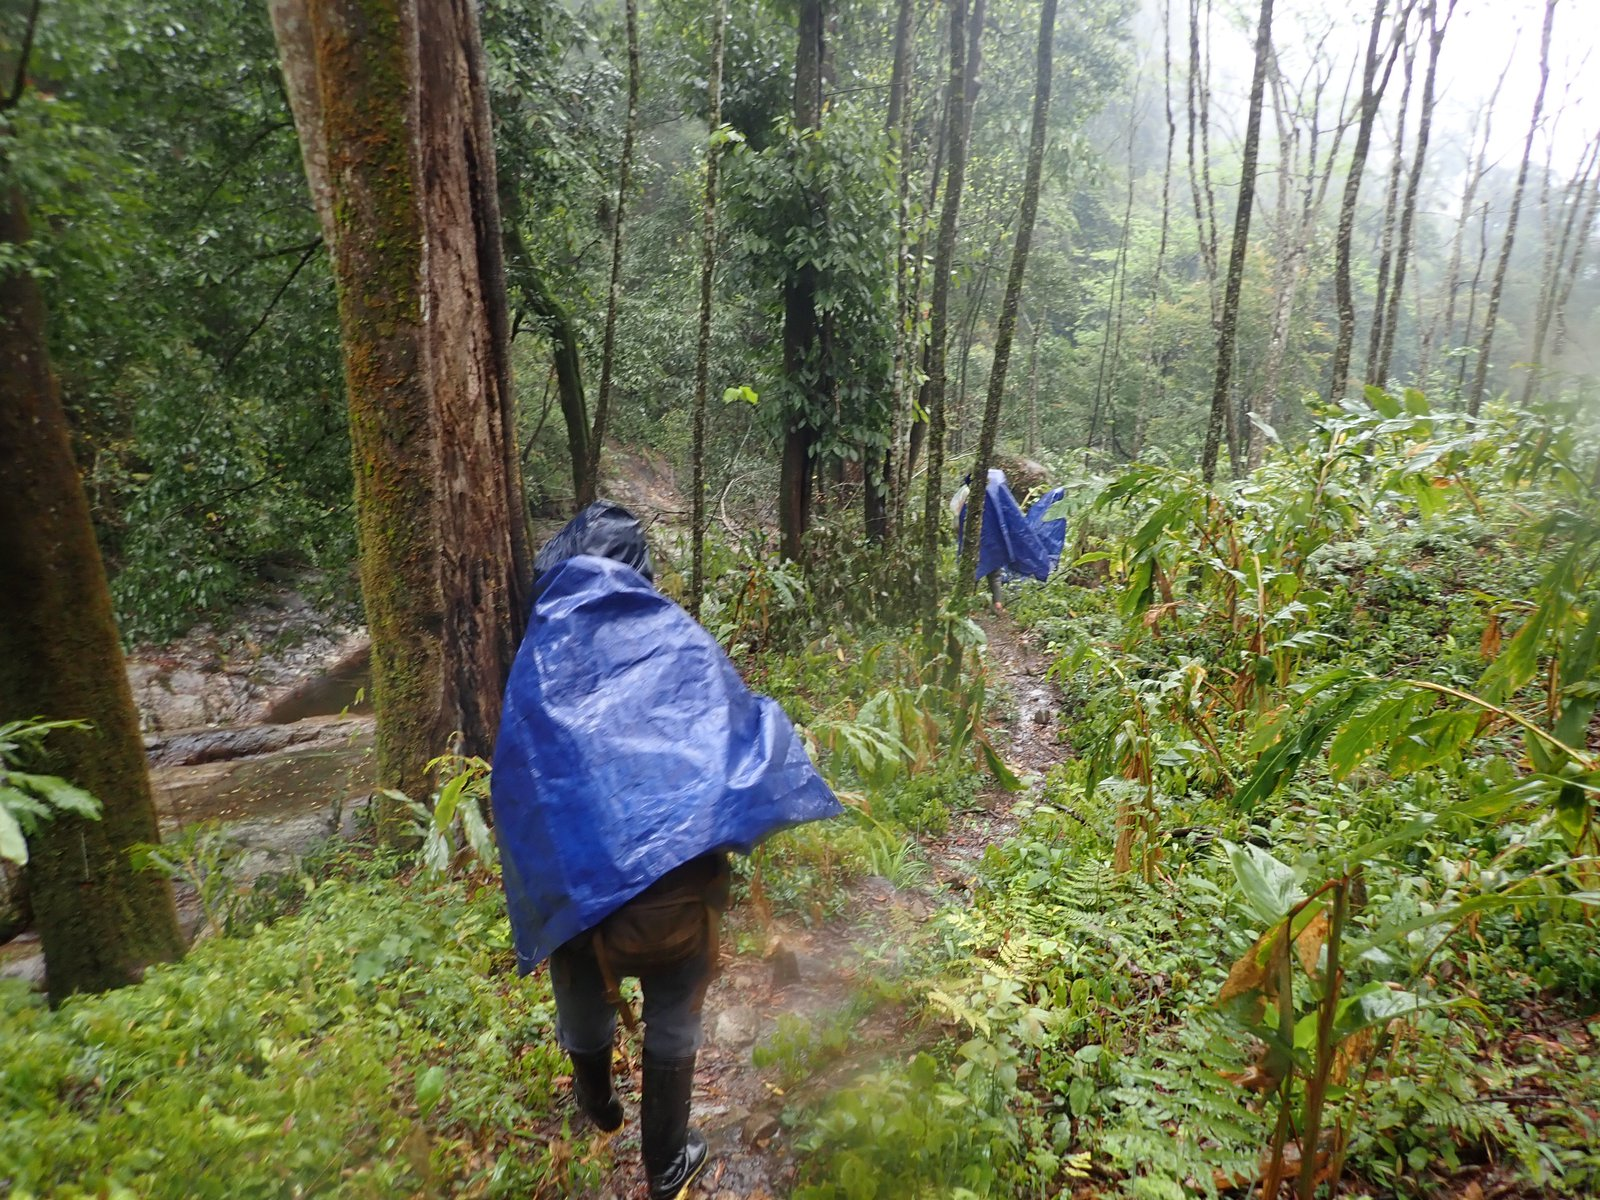 Wet weather in Lai Chau Province, northern Vietnam